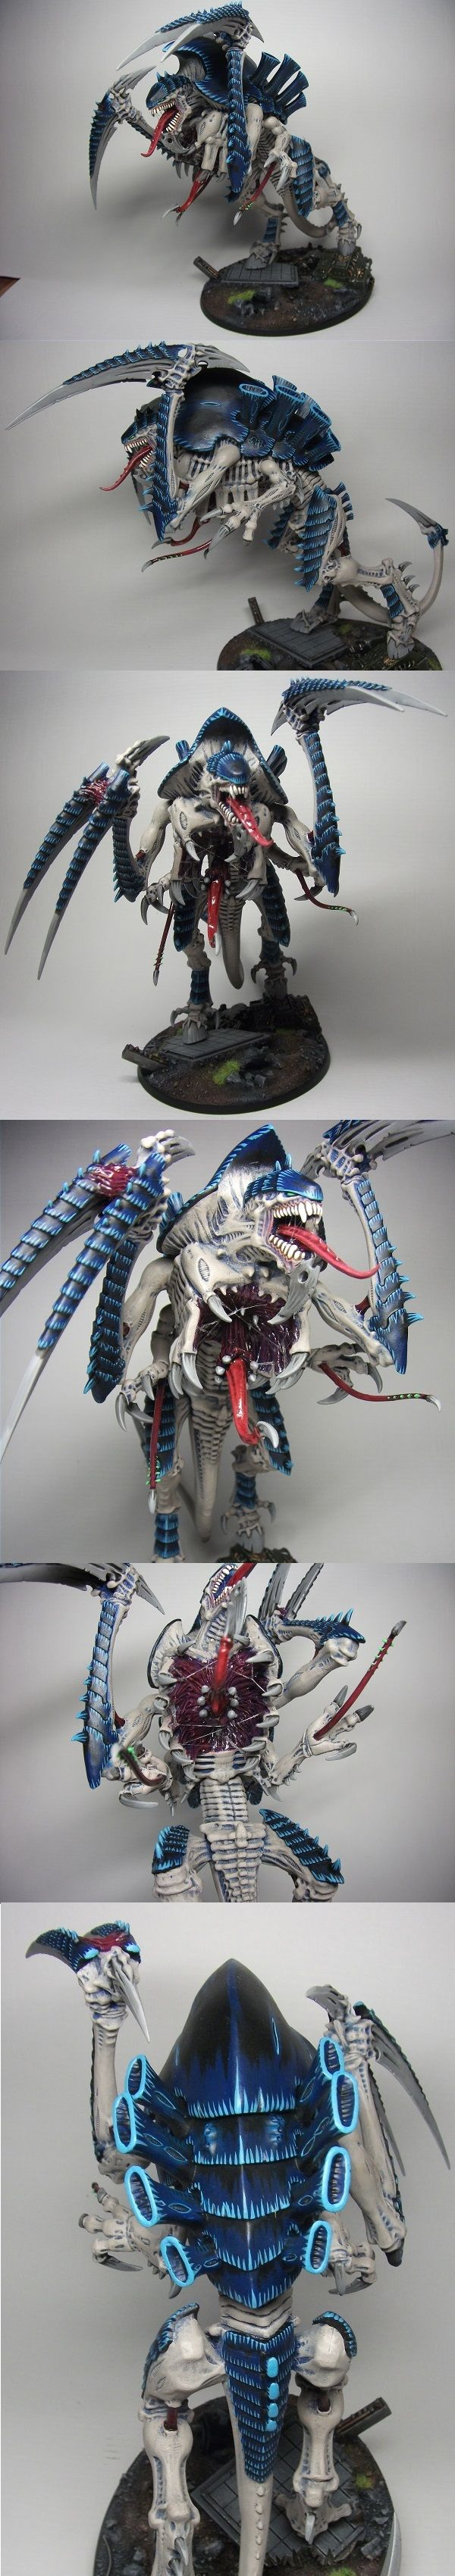 Tyranid Dimachaeron conversion.